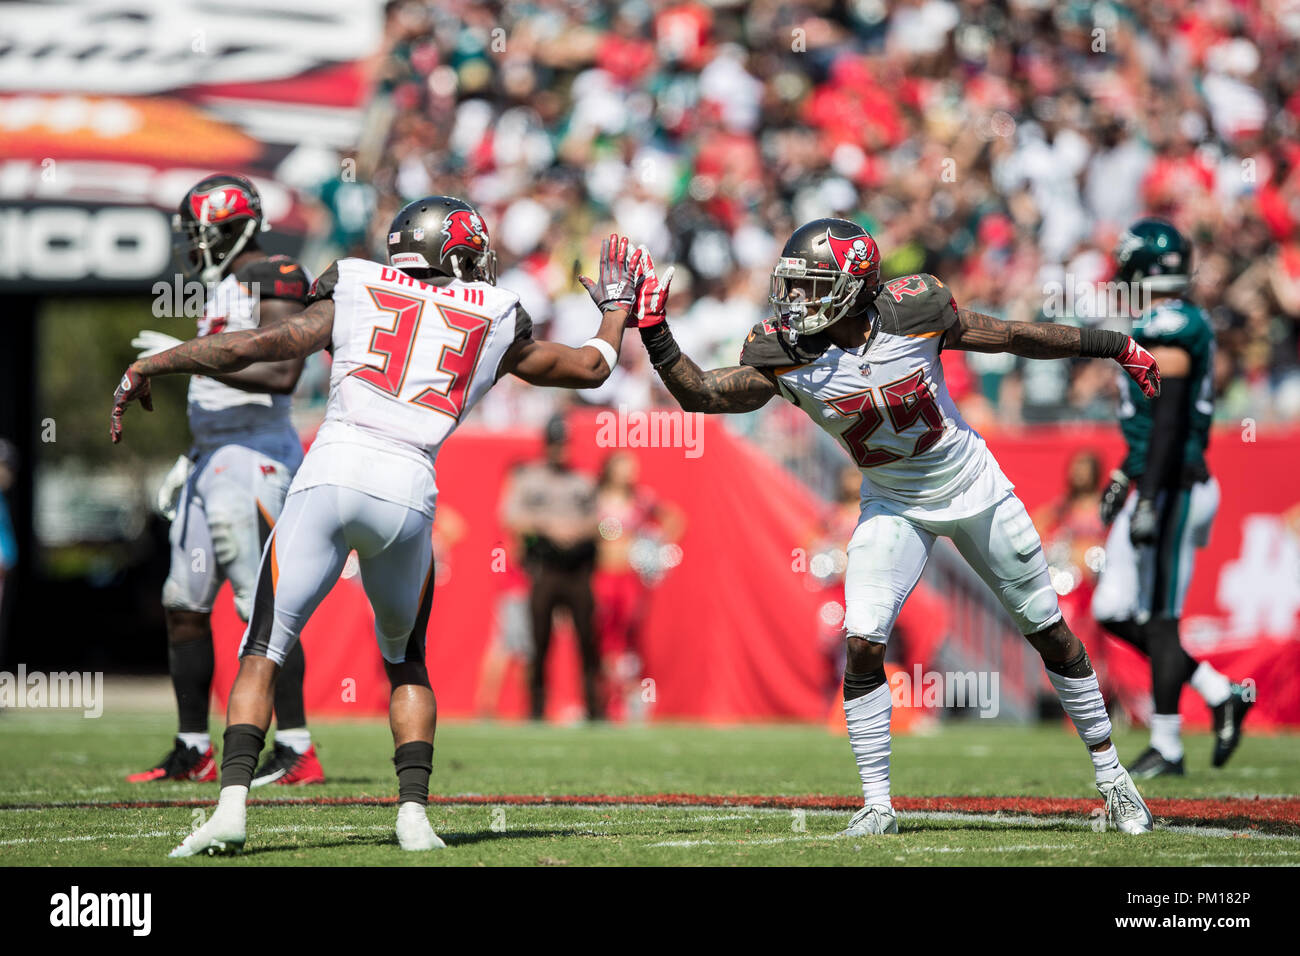 Tampa, Florida, USA. 16th Sep, 2018. Tampa Bay Buccaneers cornerback Ryan Smith (29) celebrates with cornerback Carlton Davis (33) after a broken up pass intended for the Philadelphia Eagles at Raymond James Stadium on Sunday September 16, 2018 in Tampa, Florida. Credit: Travis Pendergrass/ZUMA Wire/Alamy Live News Stock Photo